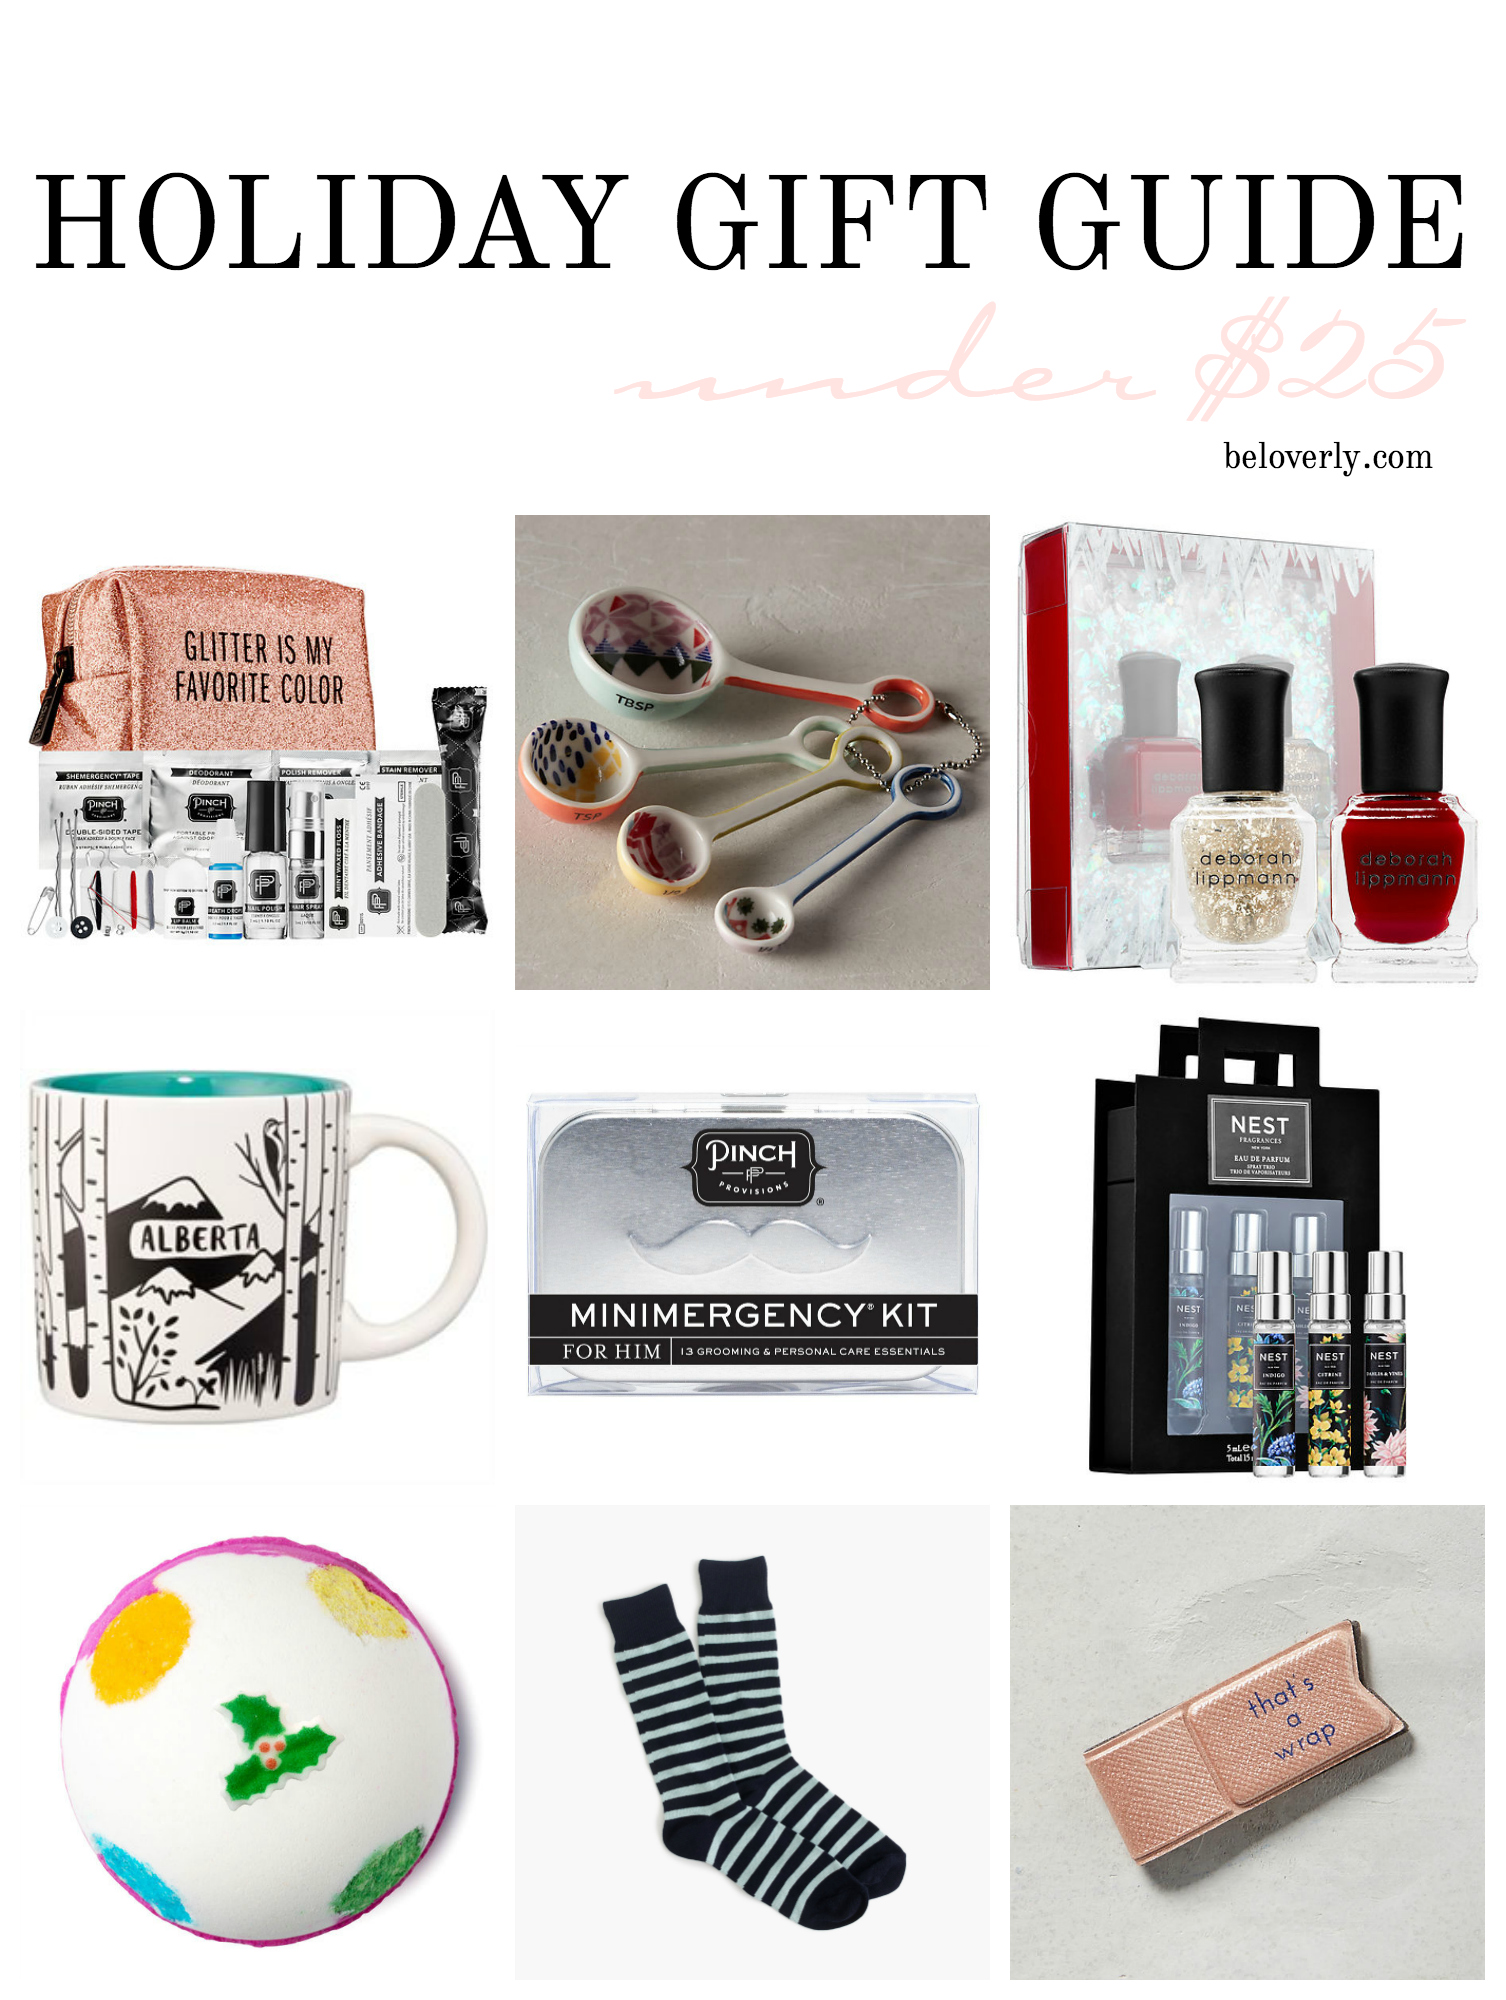 holidaygiftguide-under25